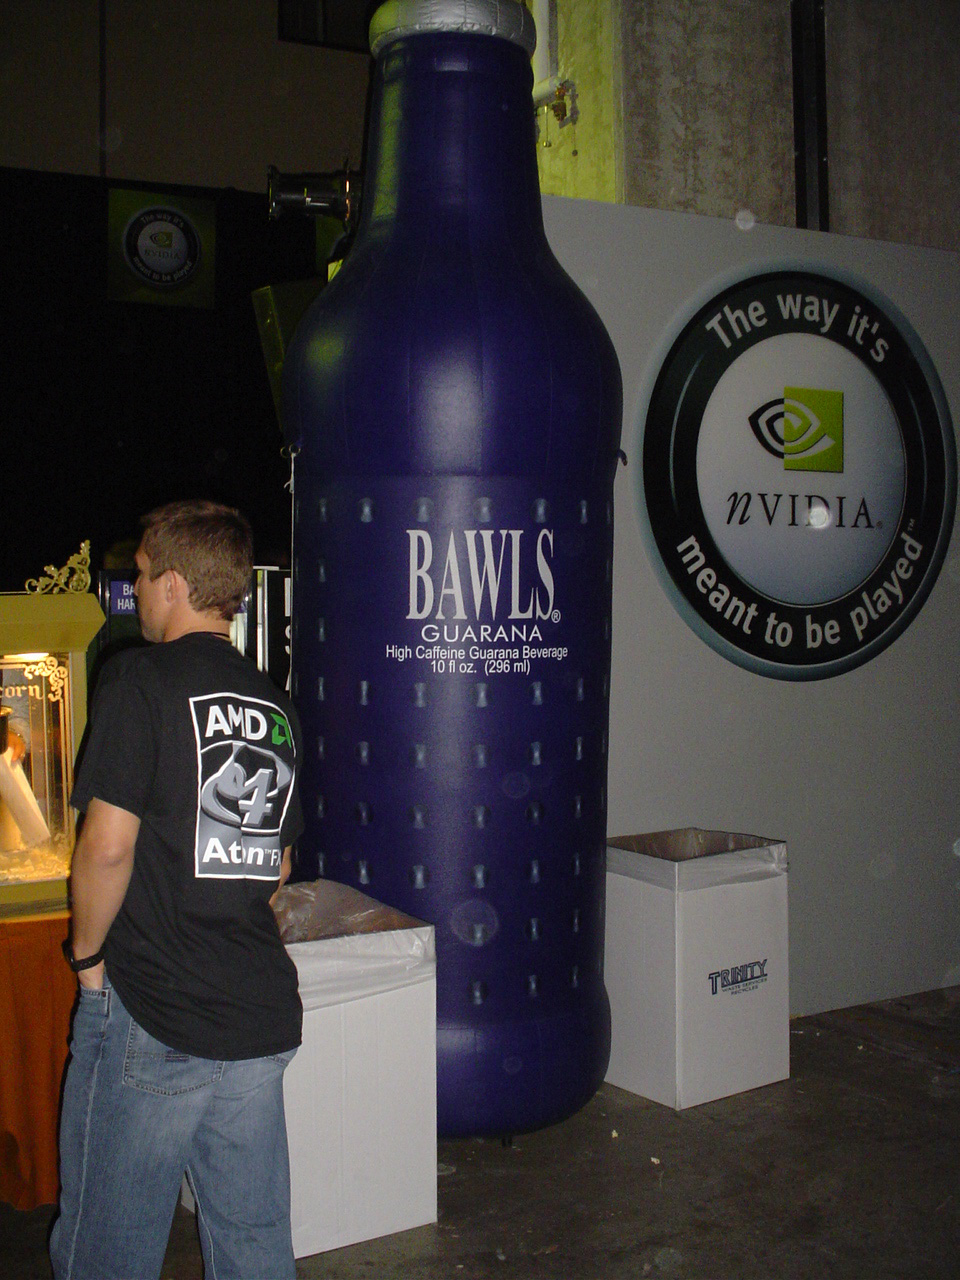 We've got the biggest Bawls of them all!